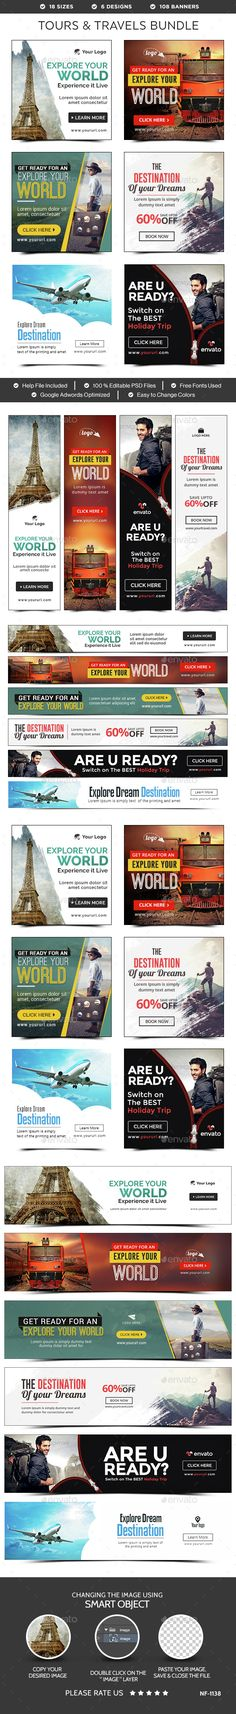 Tours & Travels Web Banners Bundle - 6 Sets Template PSD. Download here: http://graphicriver.net/item/tours-travels-banners-bundle-6-sets/15122793?ref=ksioks